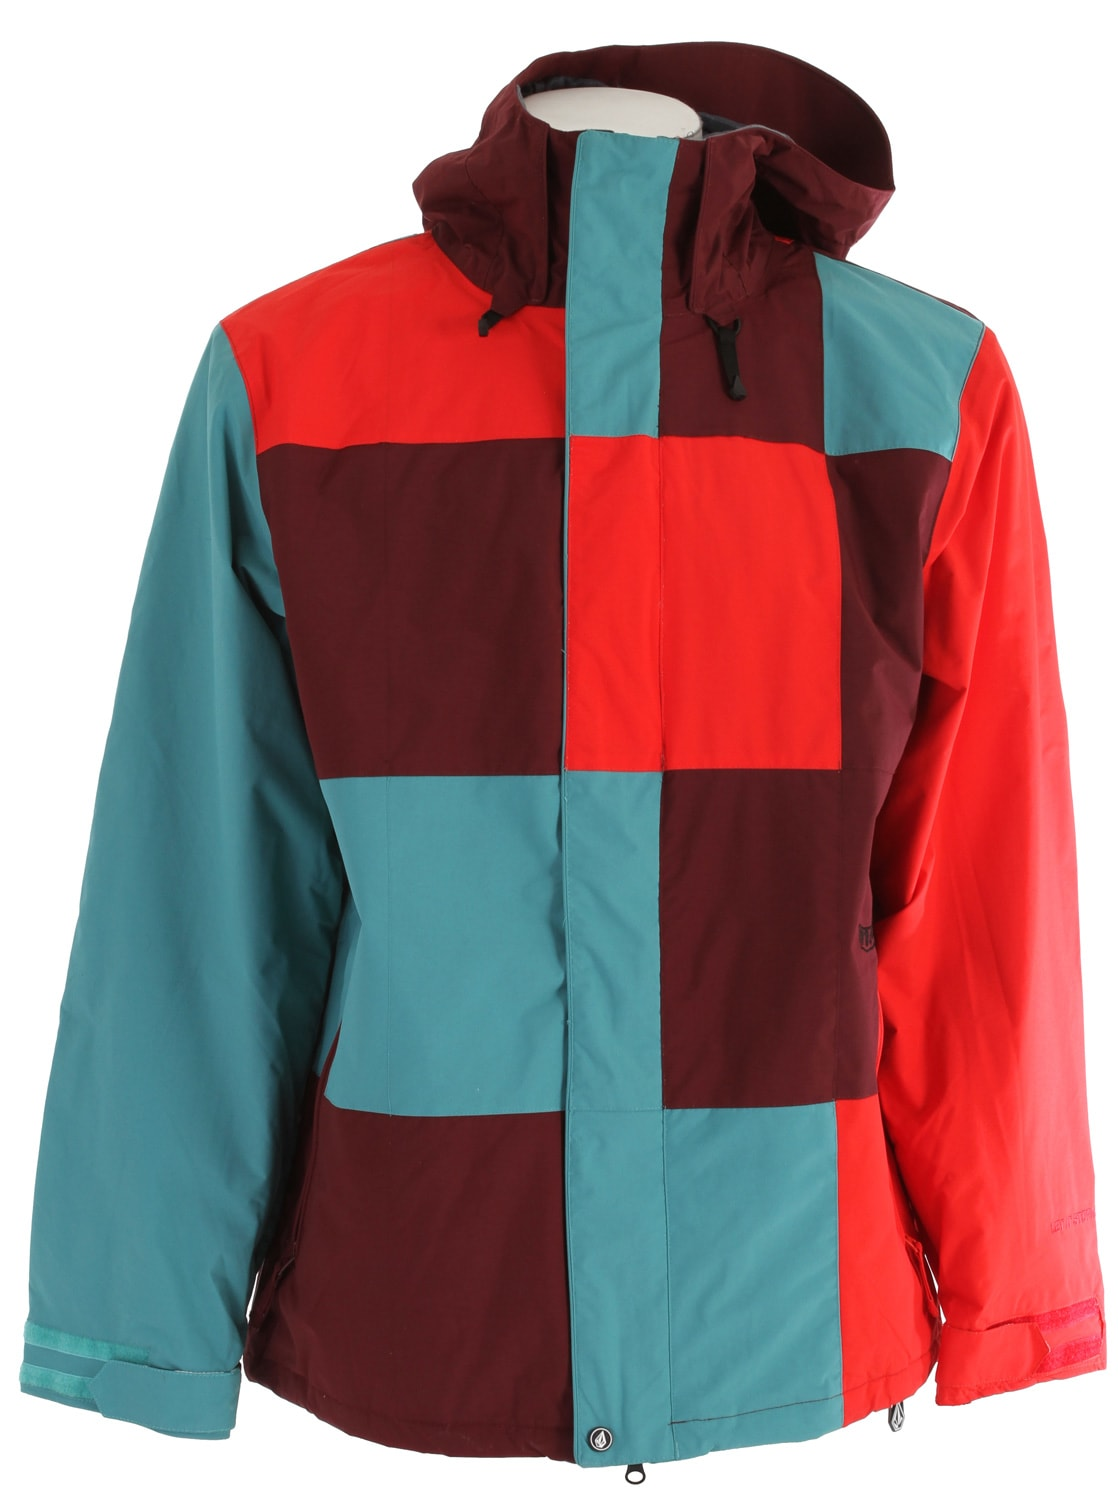 Shop for Volcom Getty Snowboard Jacket Maroon - Men's